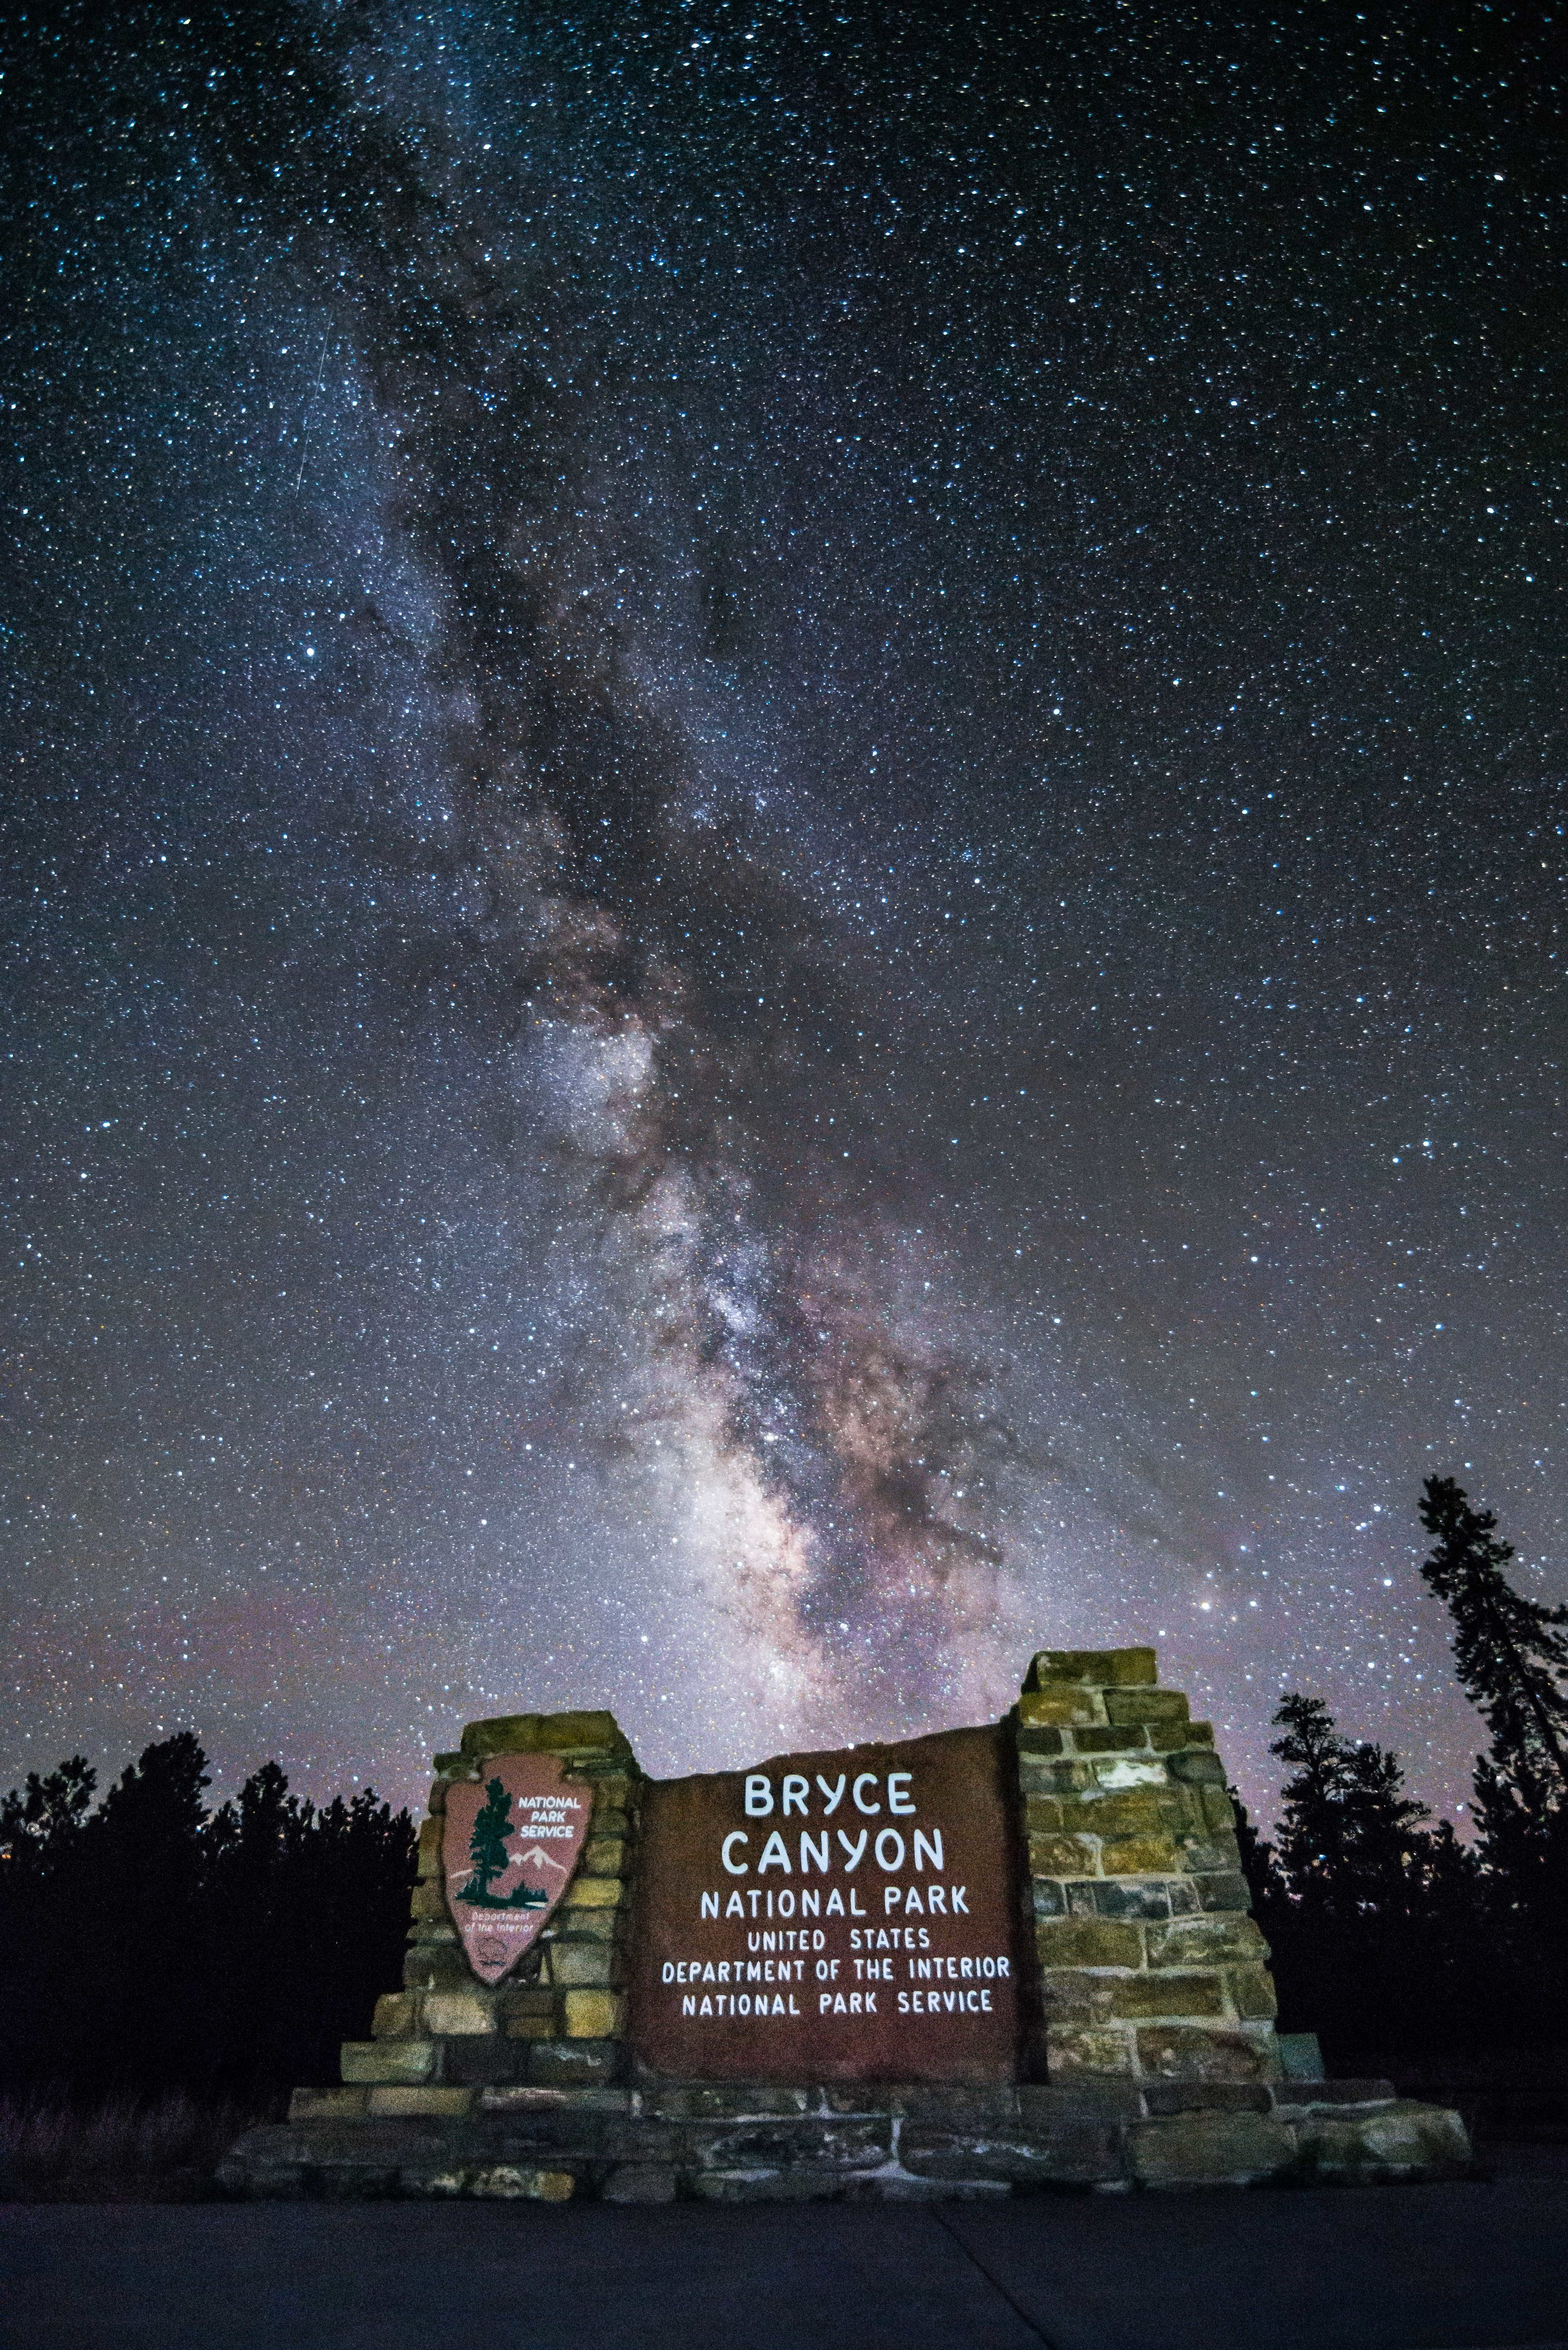 Bryce Canyon National Park Welcome Sign with Milky Way